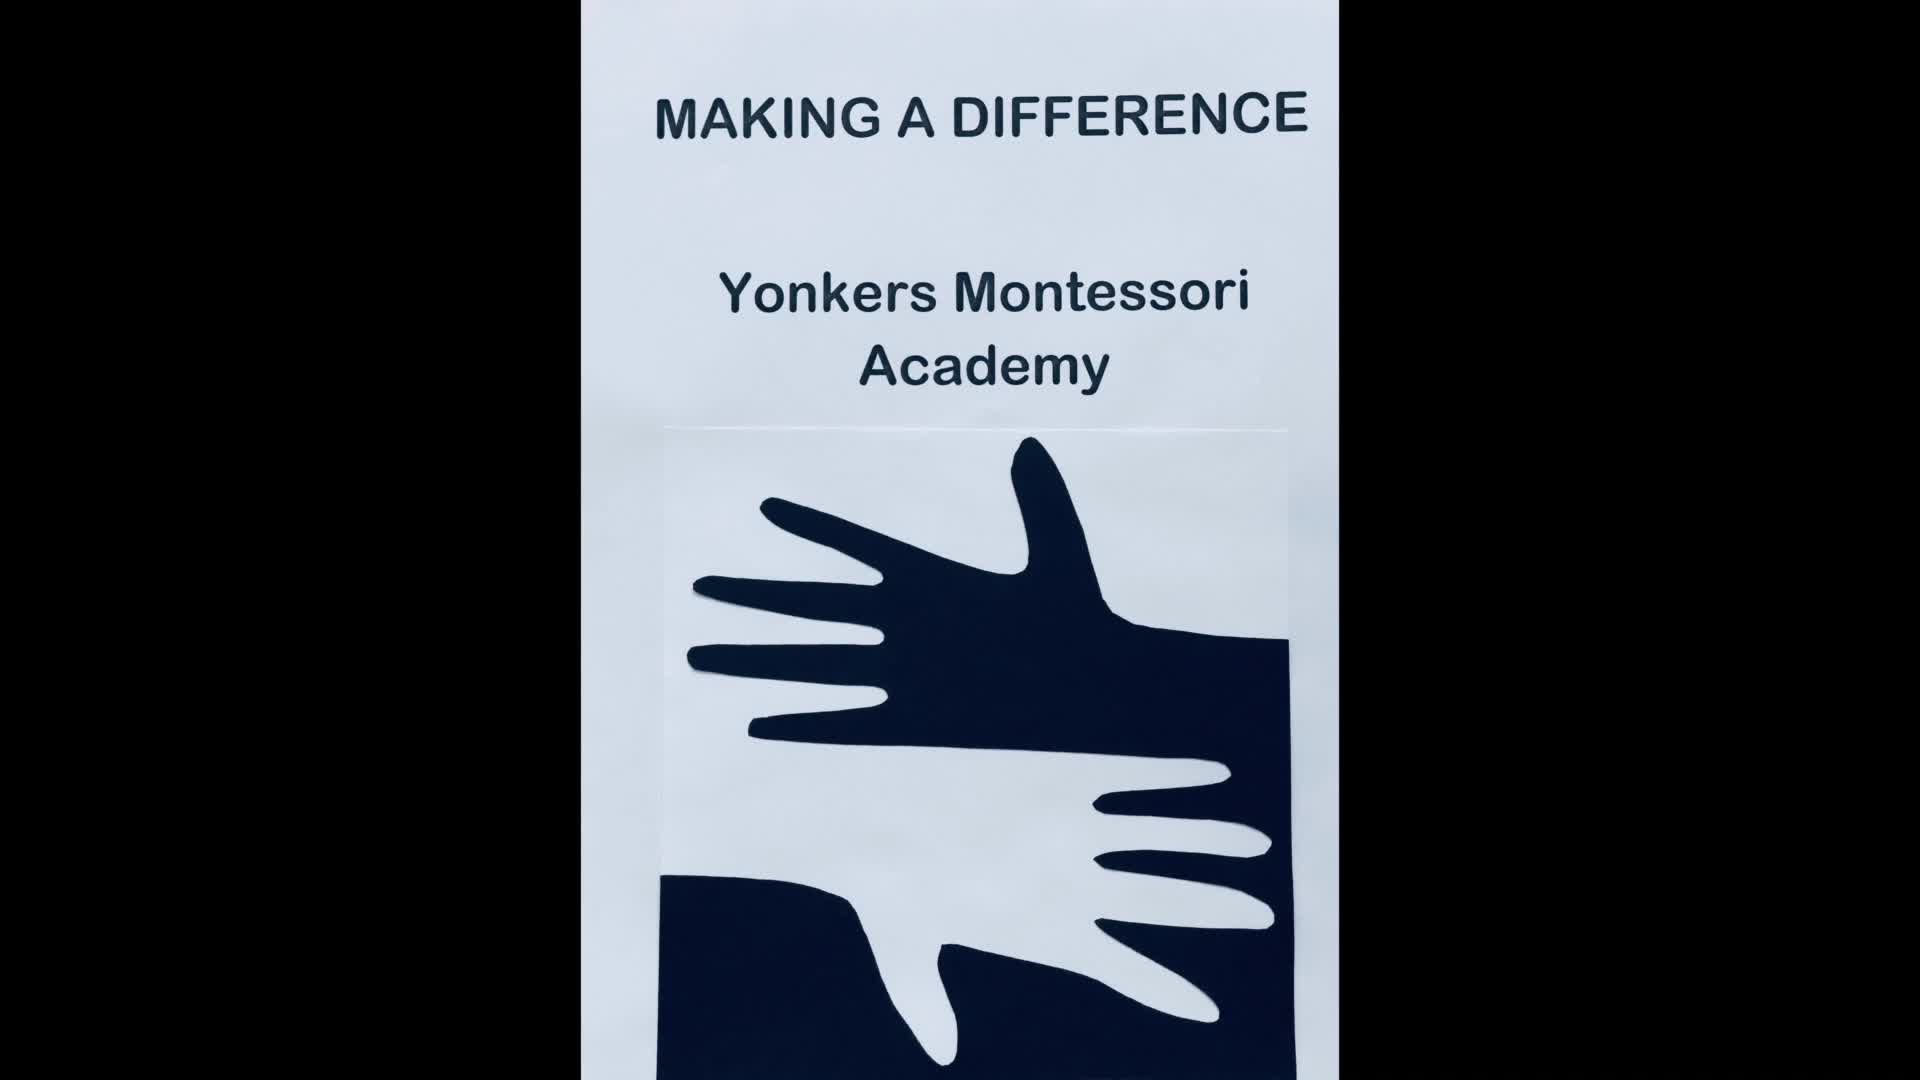 Yonkers Montessori Academy (YMA) Making A Difference Intersession 2018